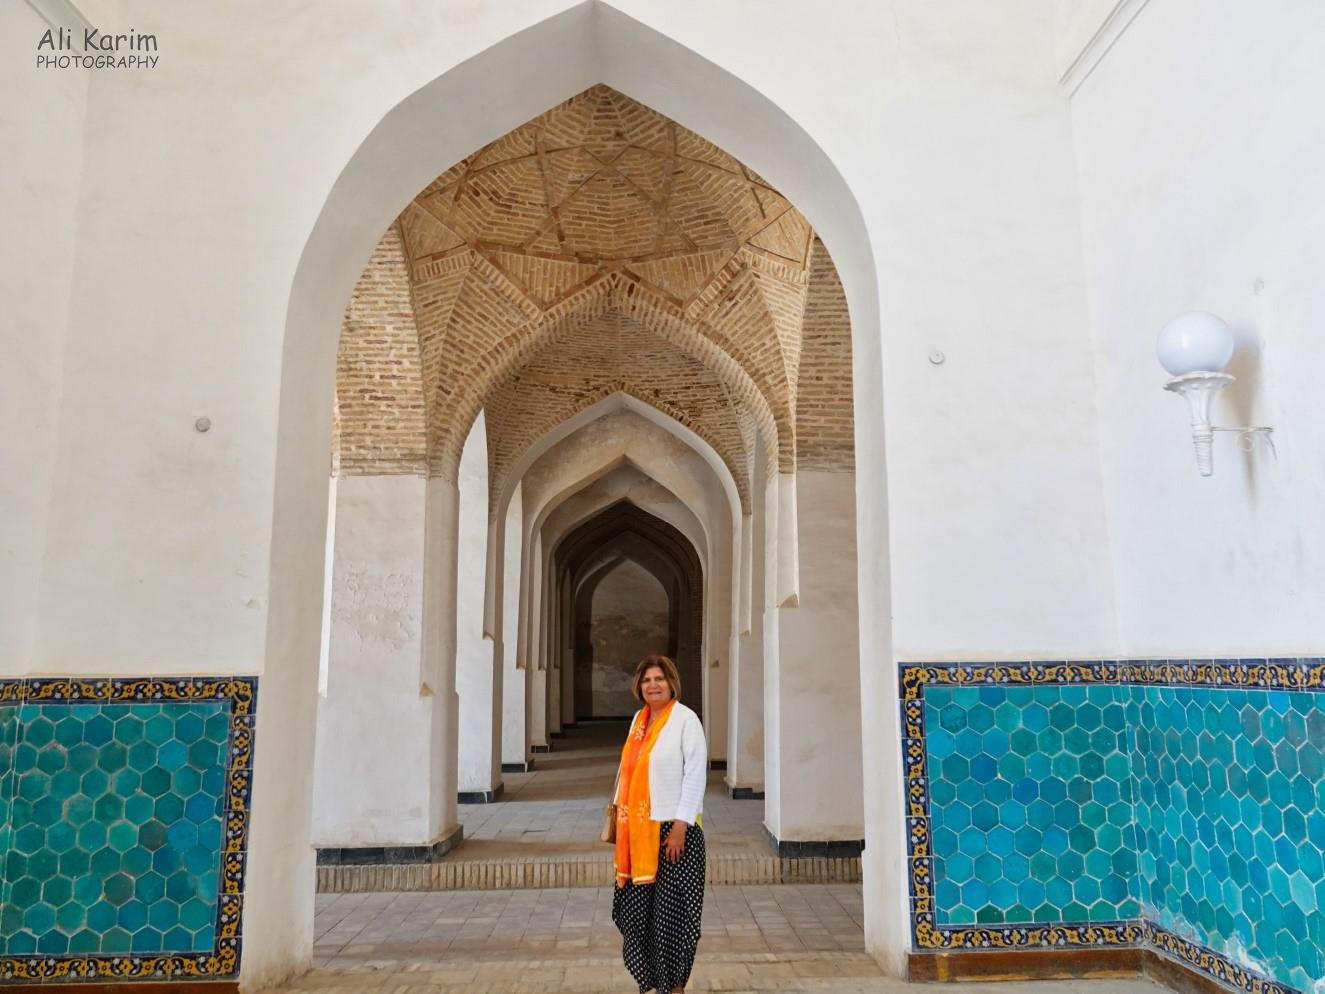 Bukhara, Oct 2019, The sides of the mosque were long covered corridors with beautiful brick and tile work